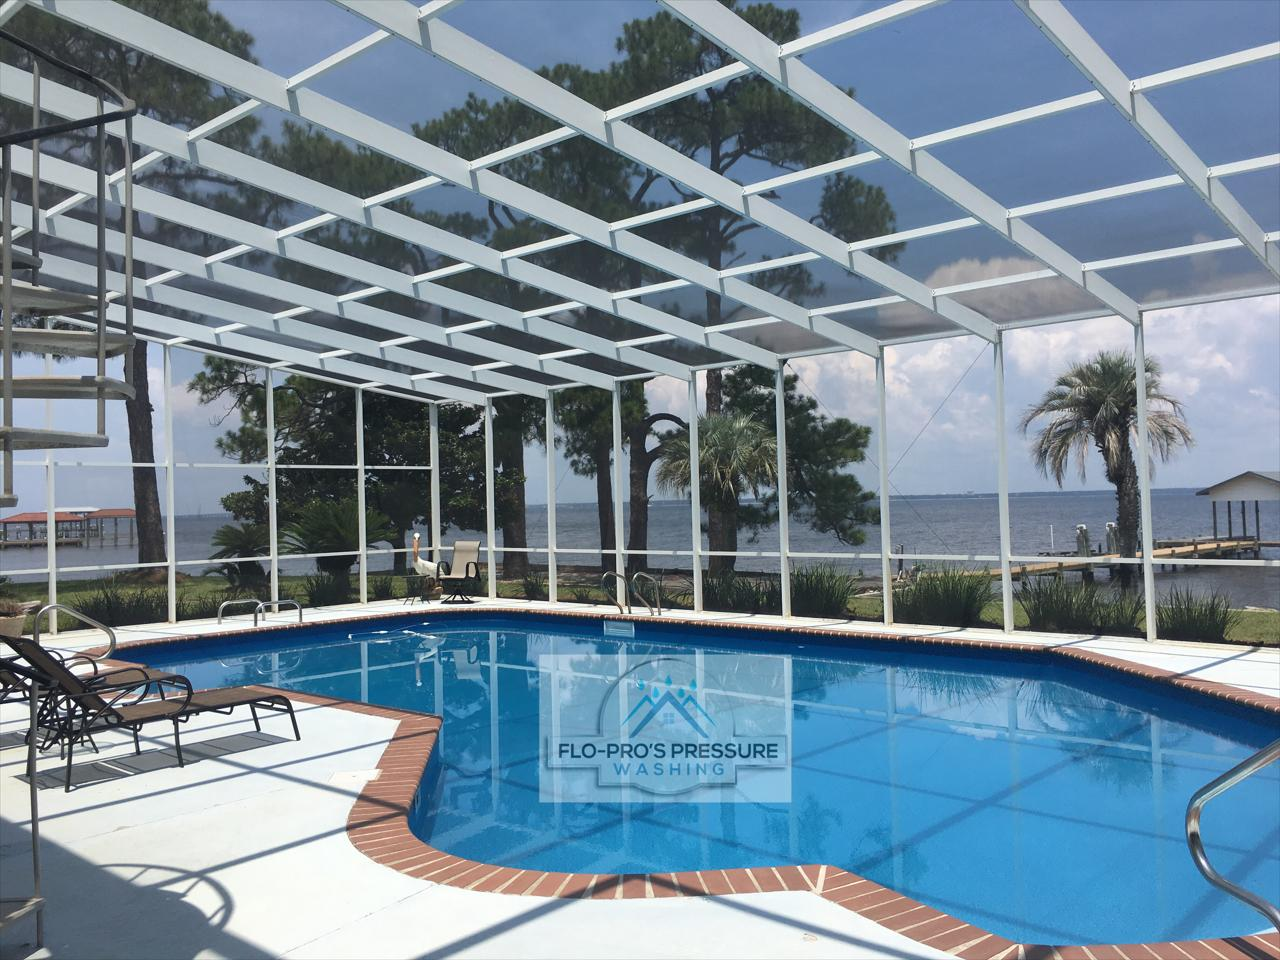 Is your pool deck and cage looking extremely dull, cloudy, and dirty?